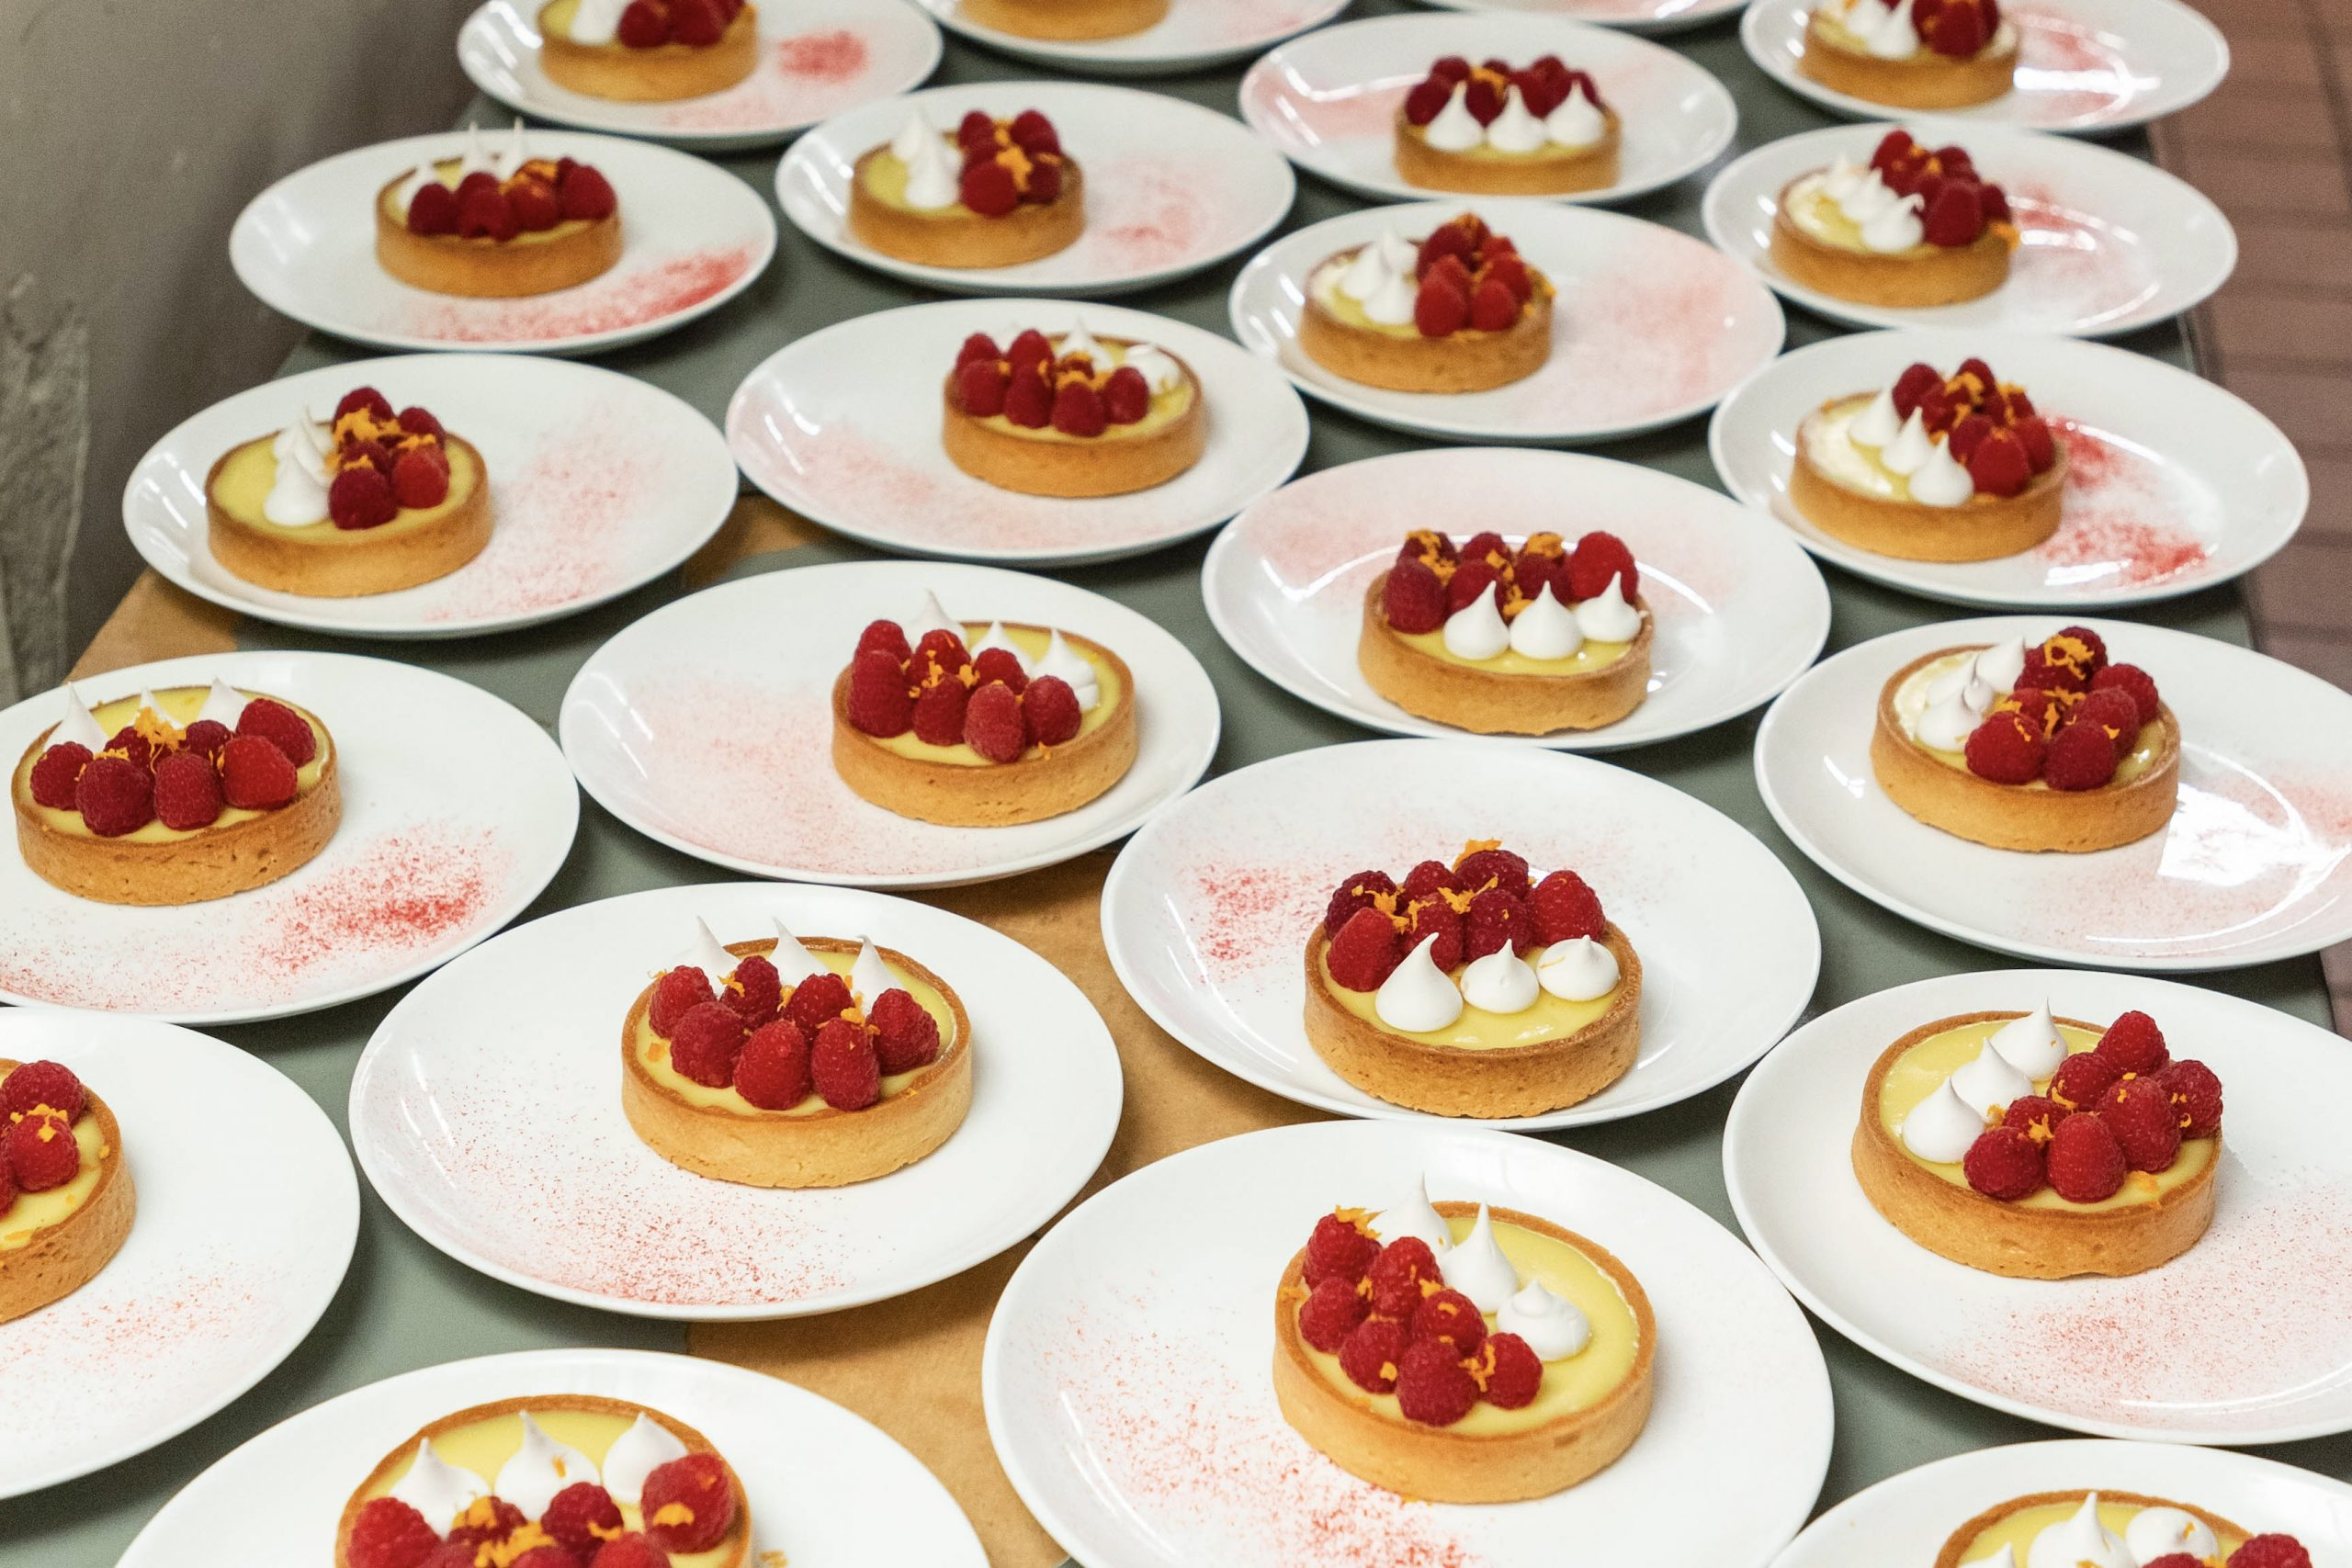 Plates of desserts that resemble lemon meringue tarts and raspberries on a kitchen counter.